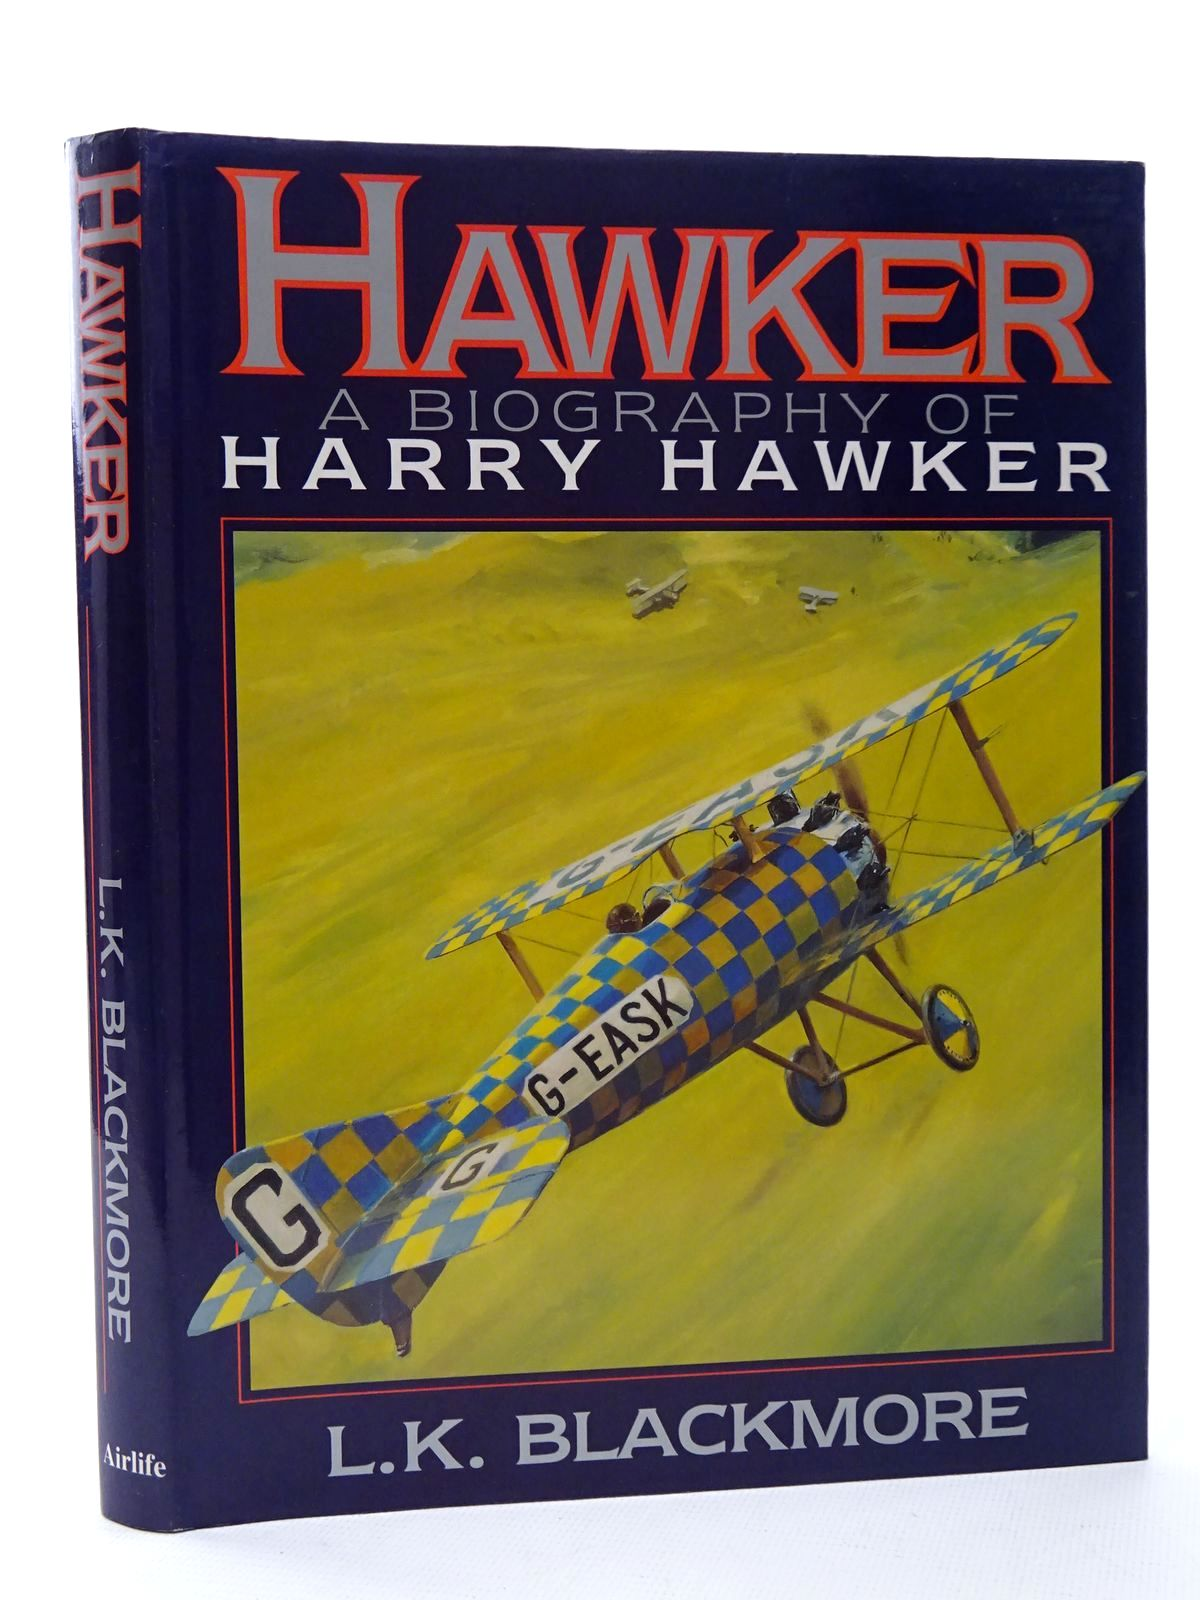 Photo of HAWKER ONE OF AVIATION'S GREATEST NAMES written by Blackmore, L.K. published by Airlife (STOCK CODE: 1610203)  for sale by Stella & Rose's Books